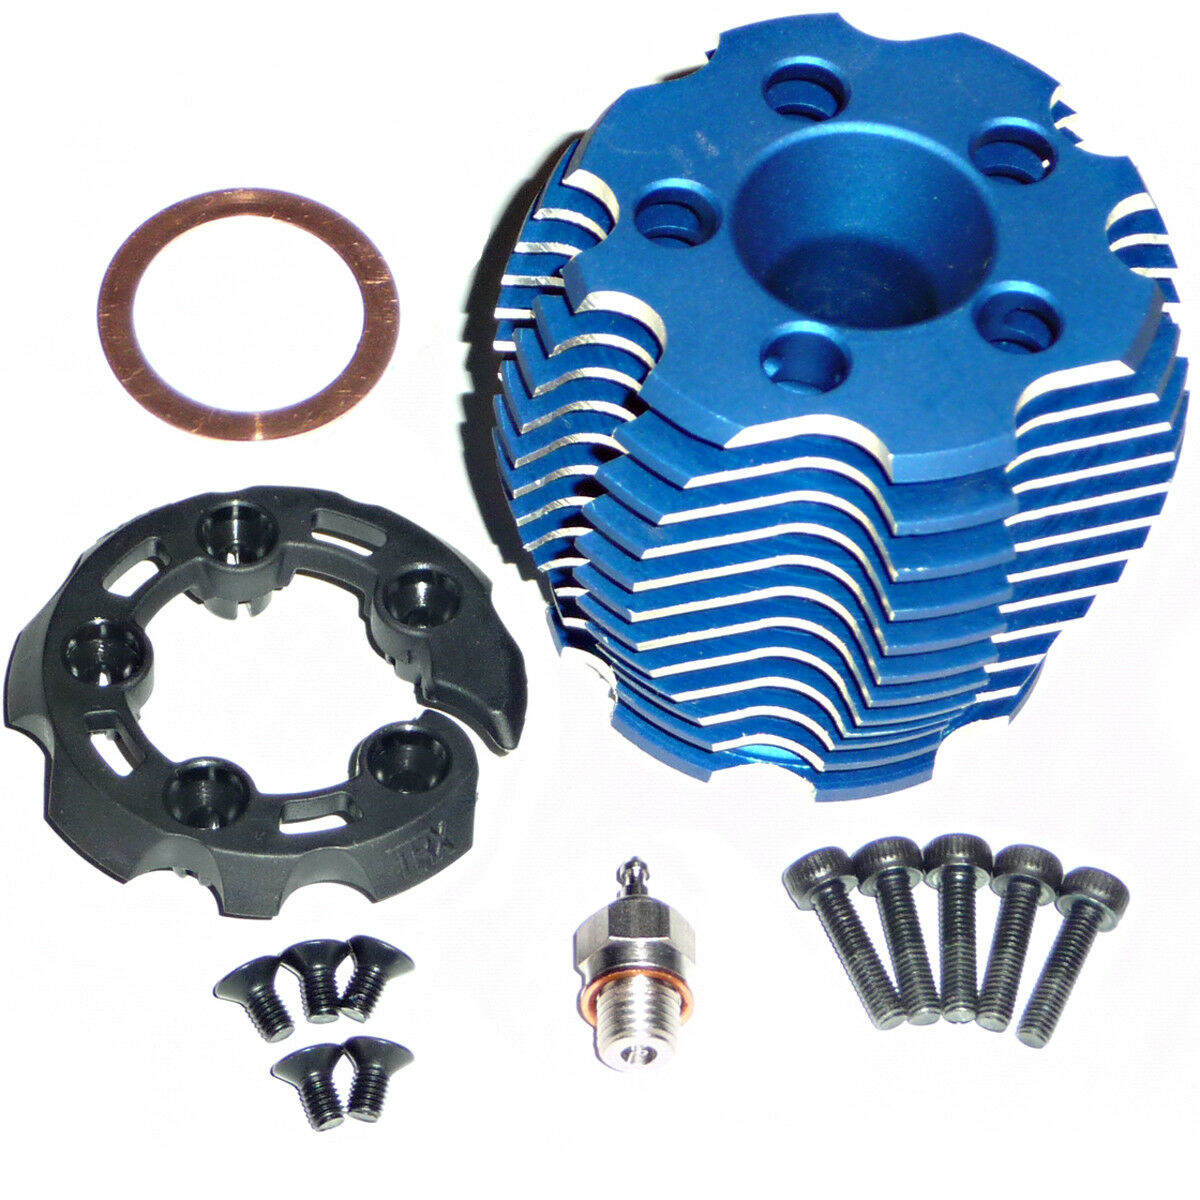 Traxxas 1 10 Slayer TRX 3 3 3 3 3 3 ALUMINUM COOLING HEAD